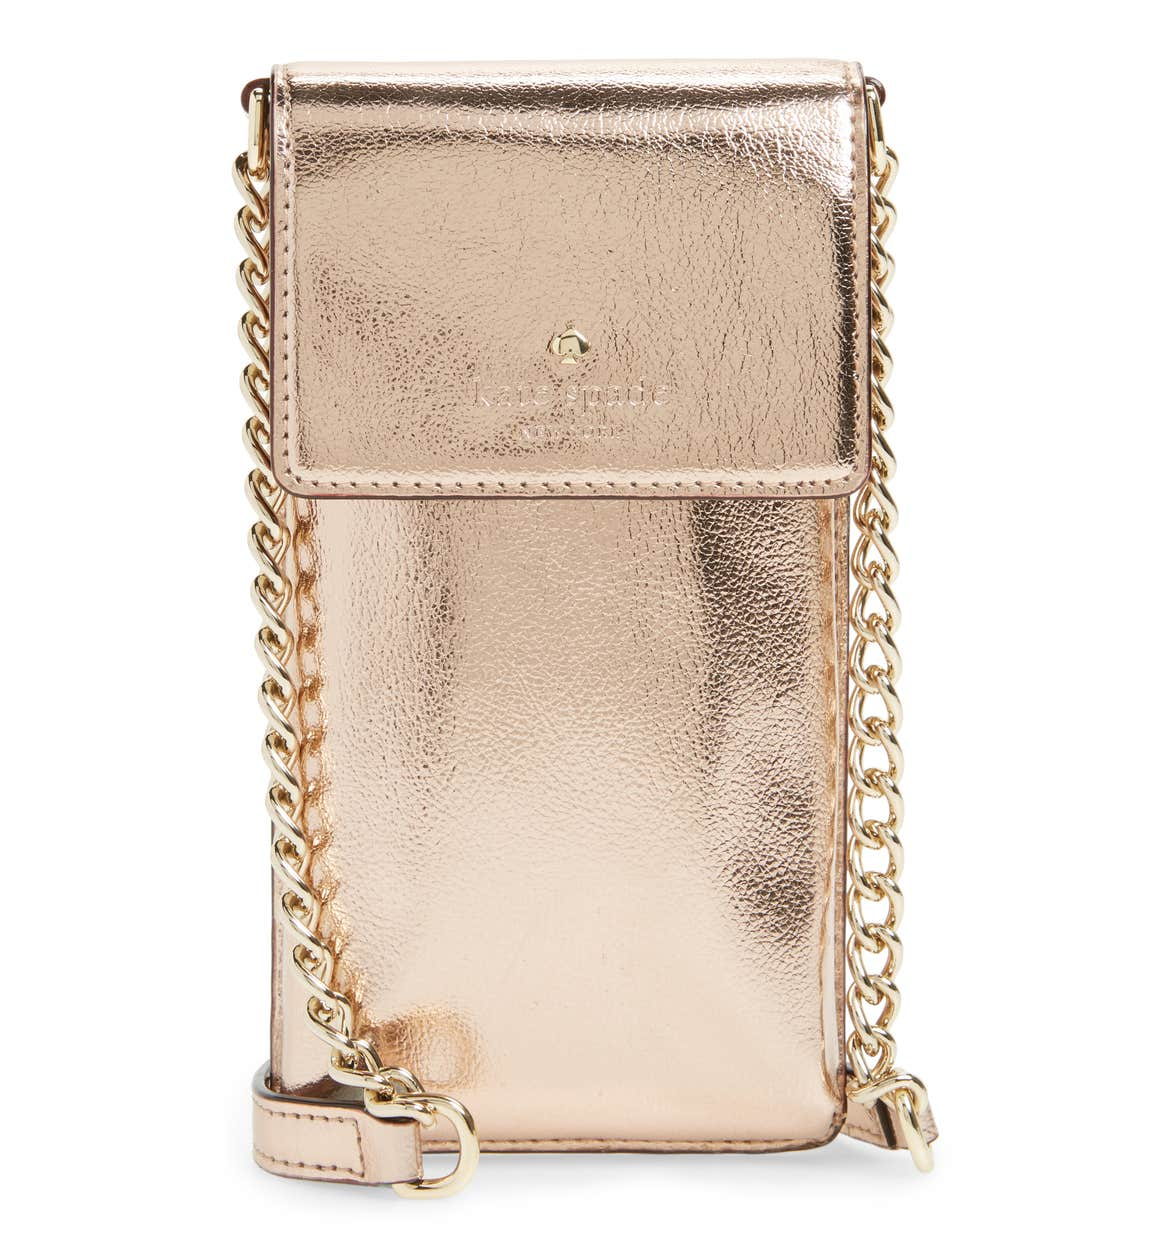 kate spade metallic leather smartphone crossbody bag